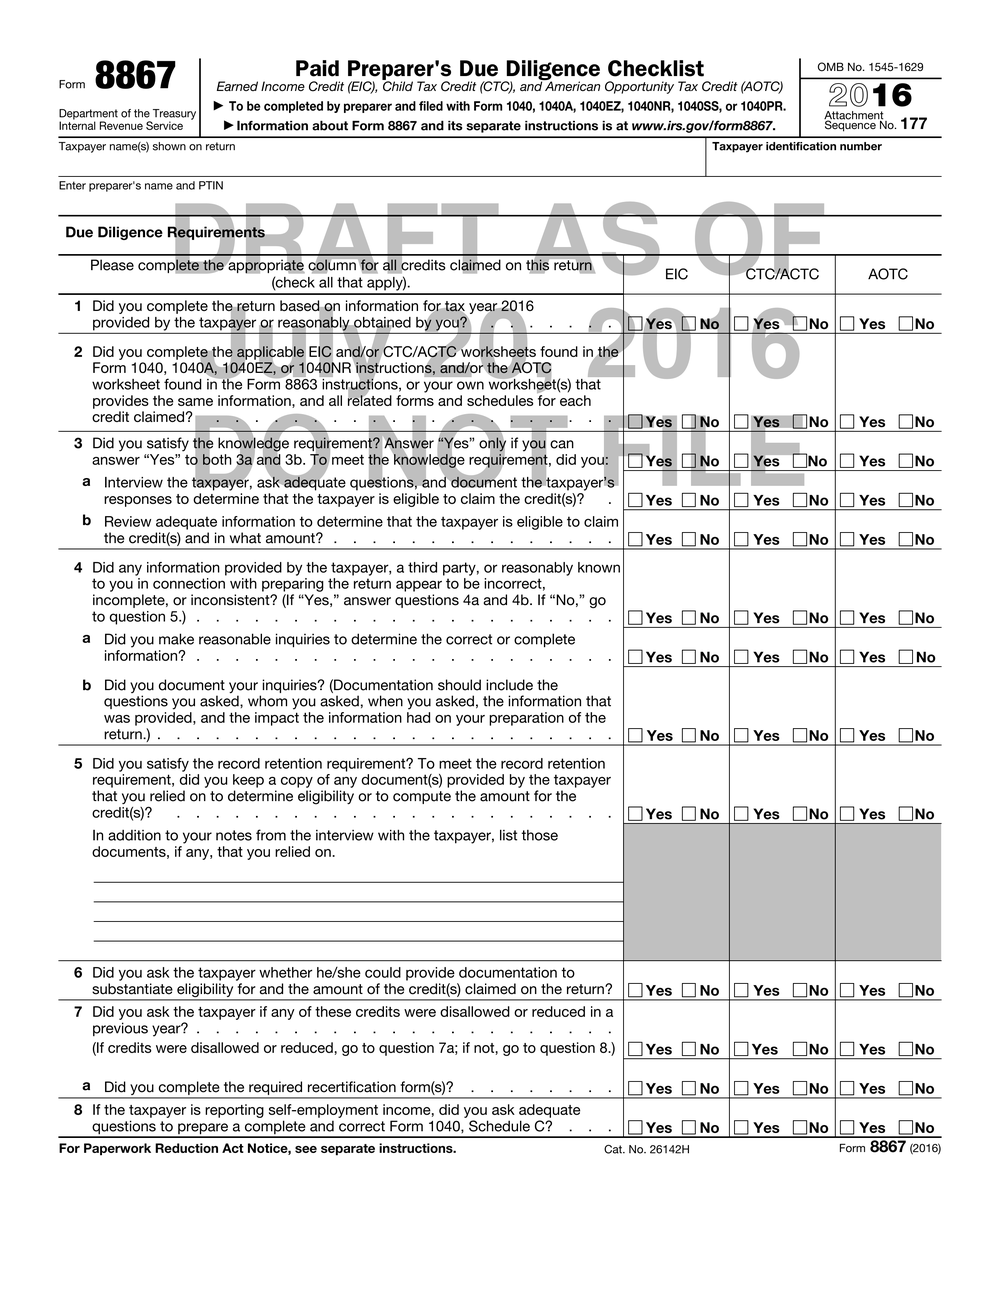 worksheet. Child Tax Credit Worksheet. Worksheet Fun Worksheet Study ...